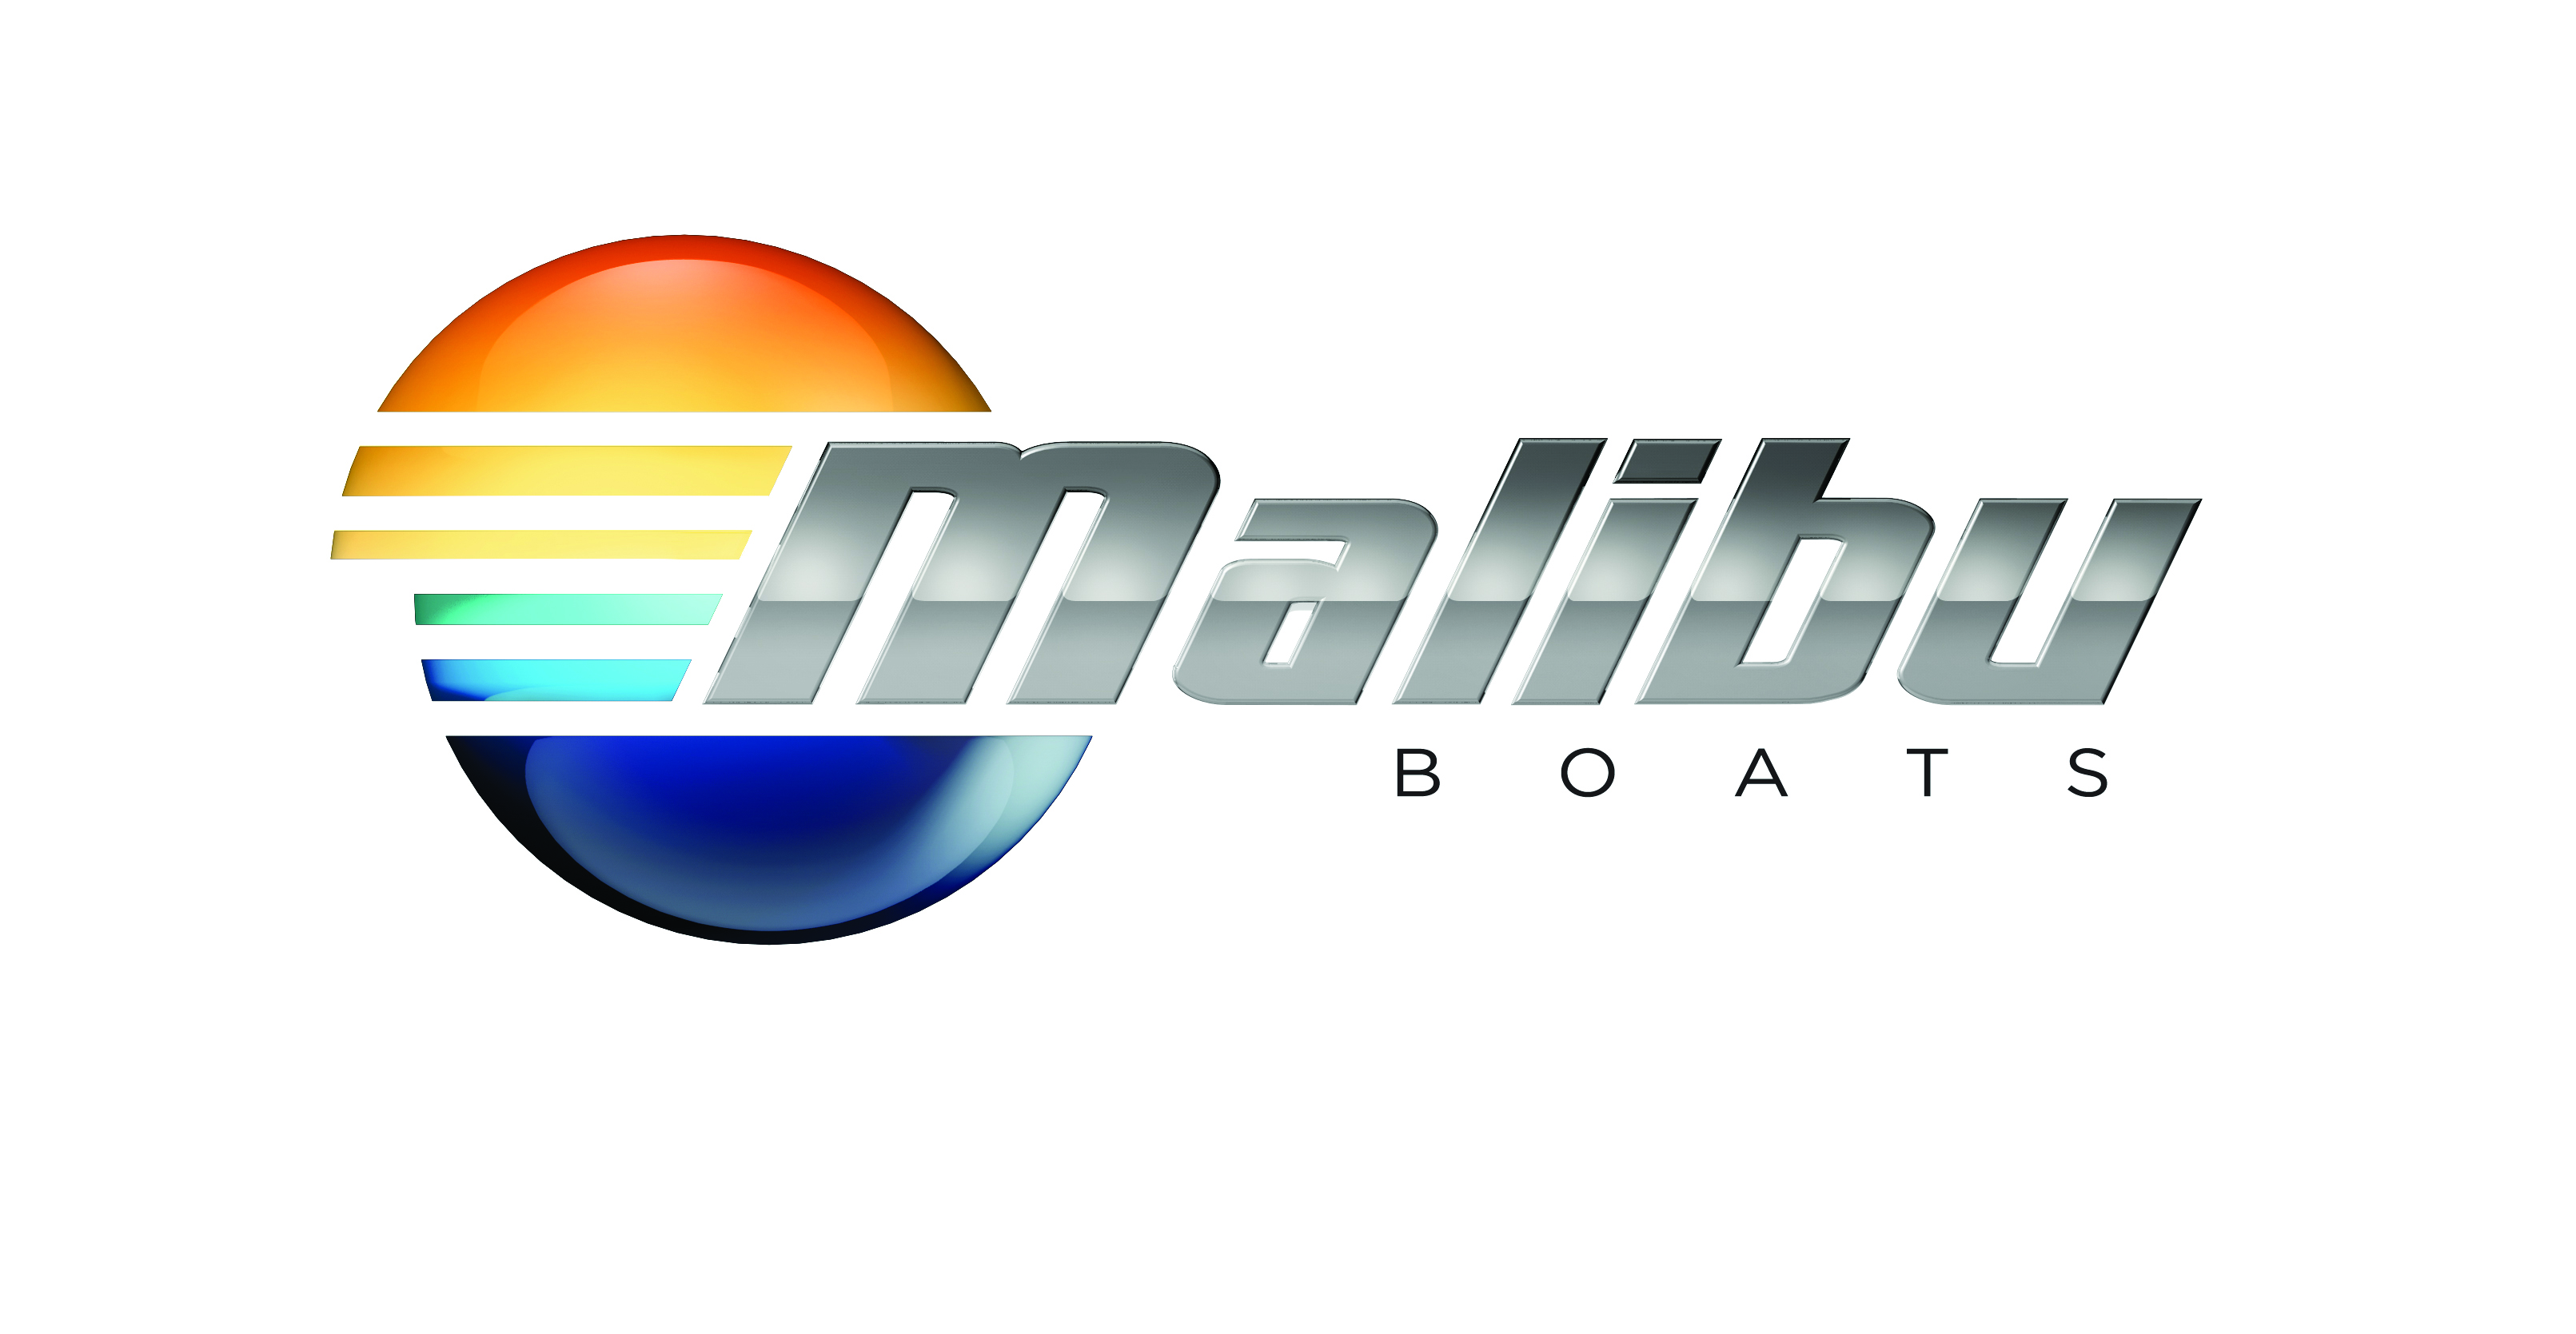 A Malibulogoprint on Boat Wiring Diagram